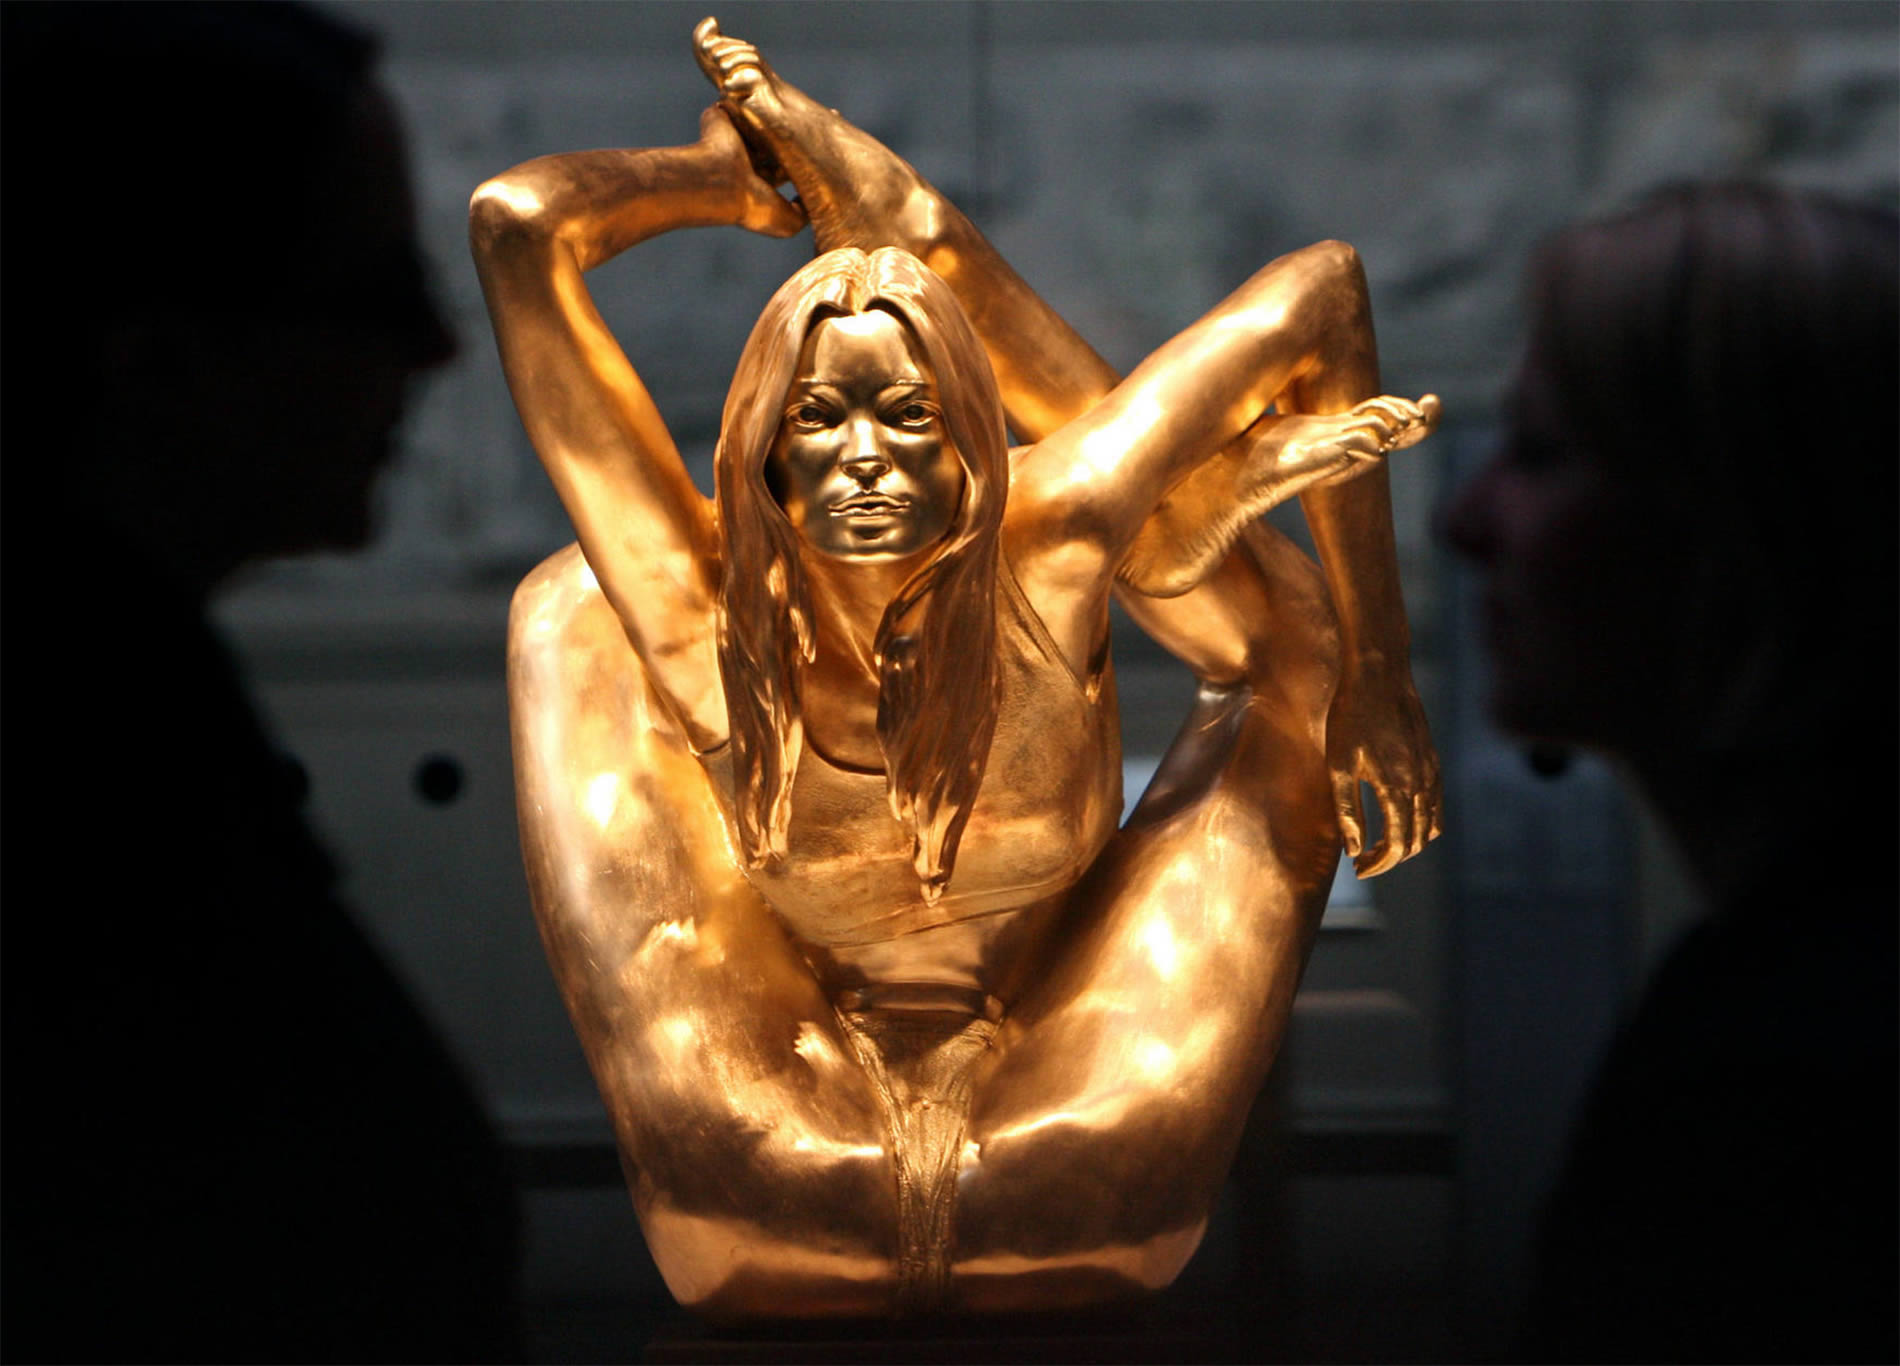 10 Nude Sculptures That Caused a Stir